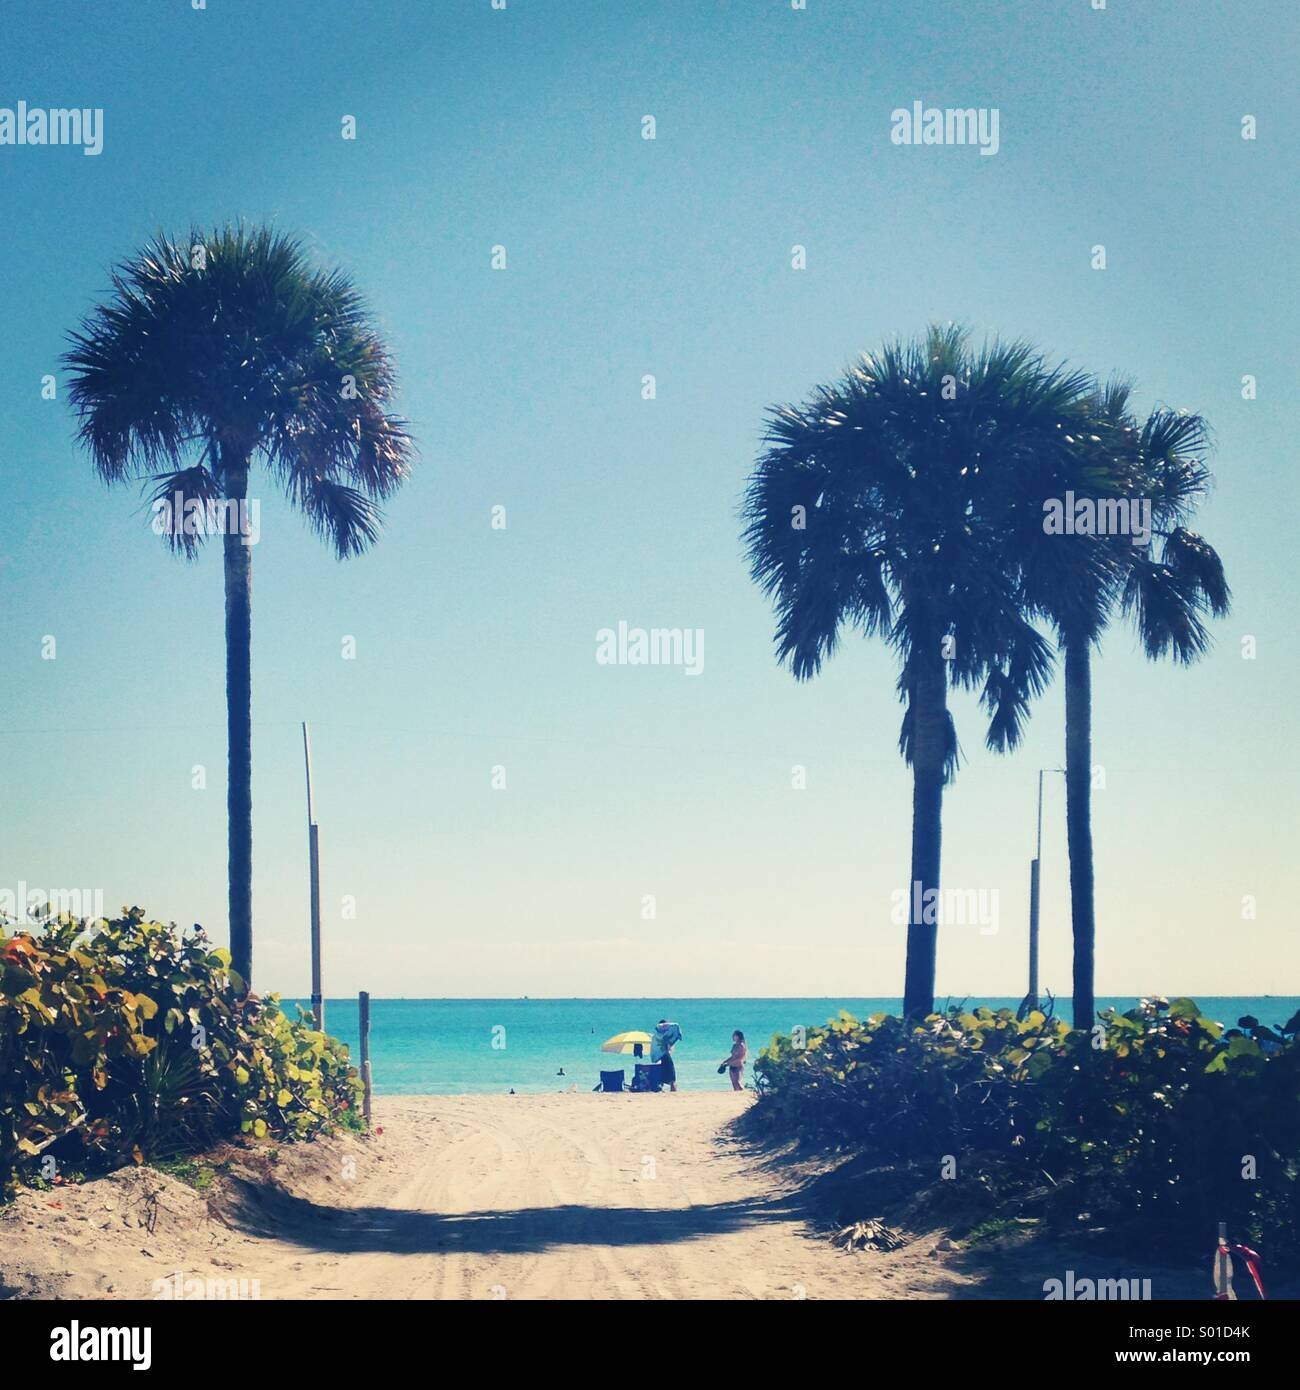 Miami beach - Stock Image